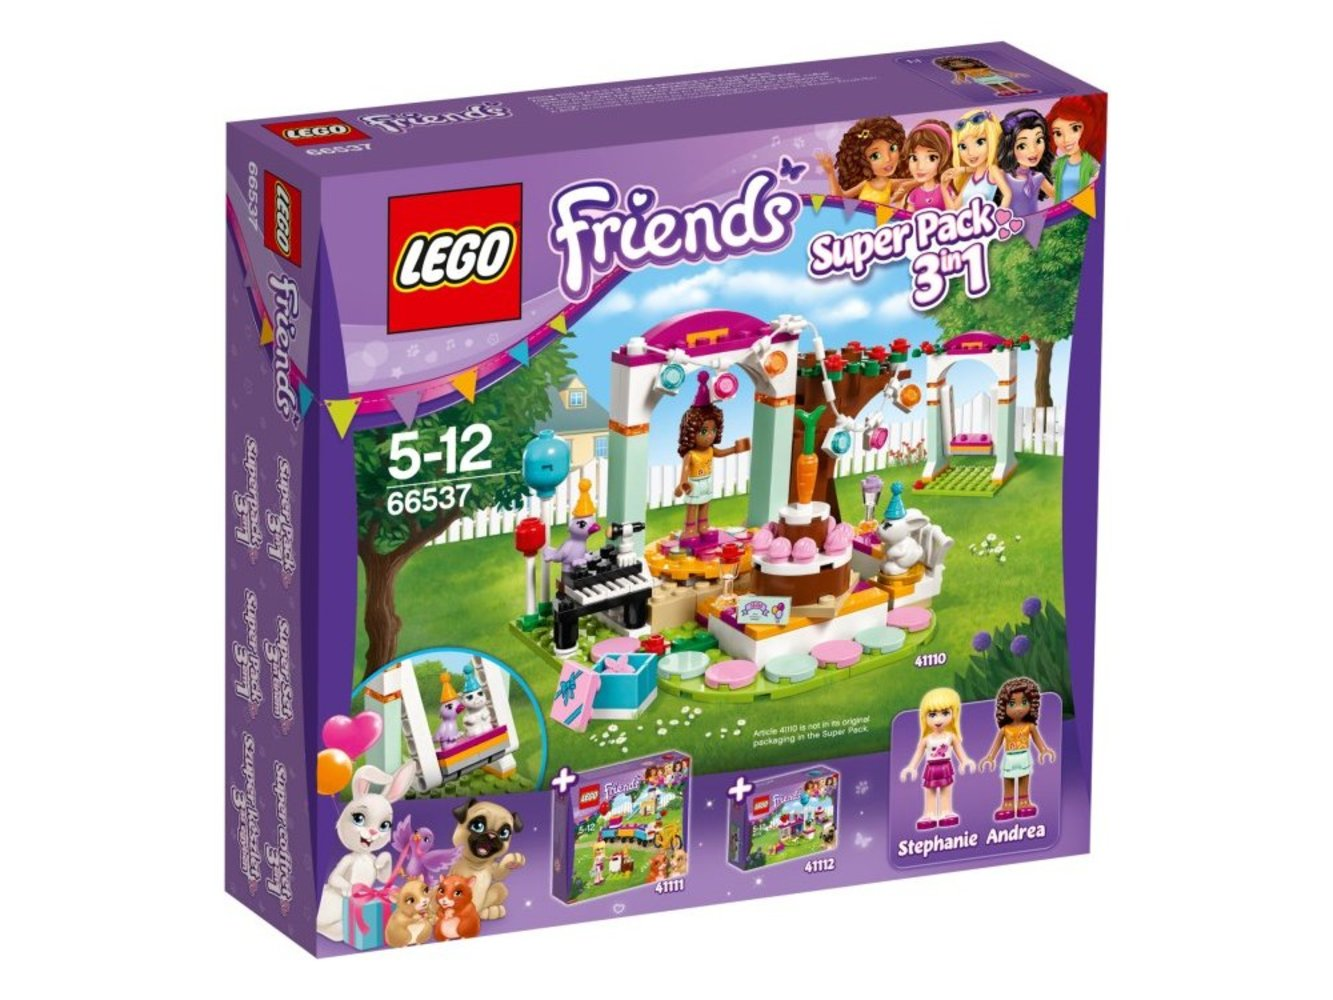 Friends Super Pack 3 in 1